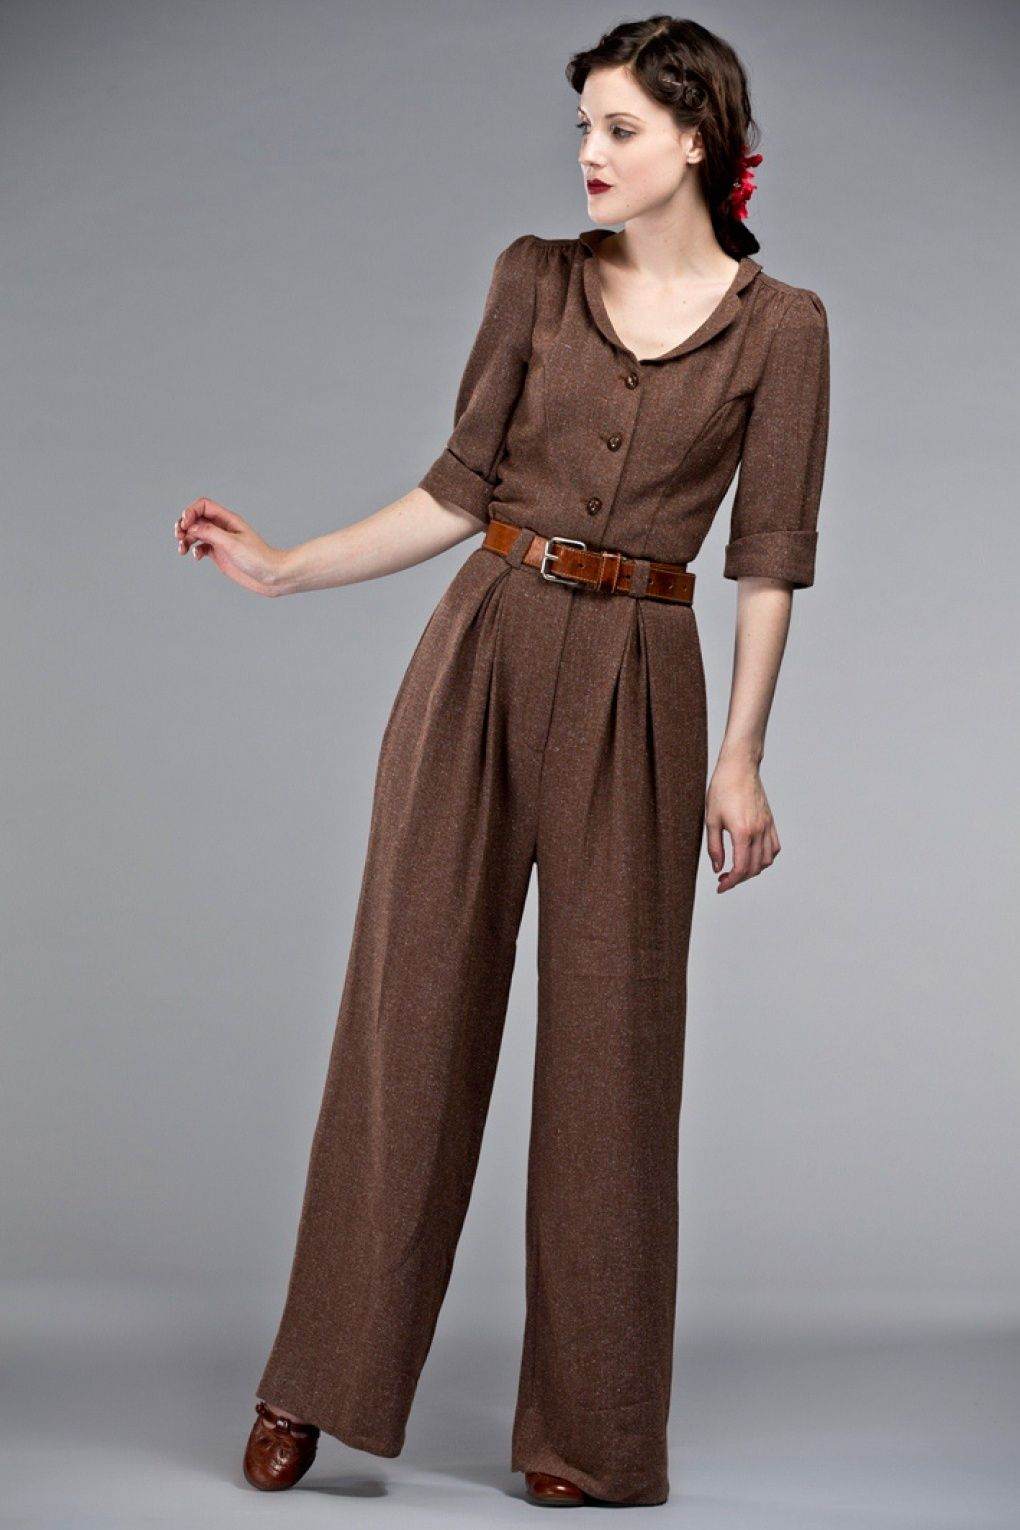 More Forties Inspired Flair: Emmy 40s The Feminine Flair Jumpsuit Brown In 2020